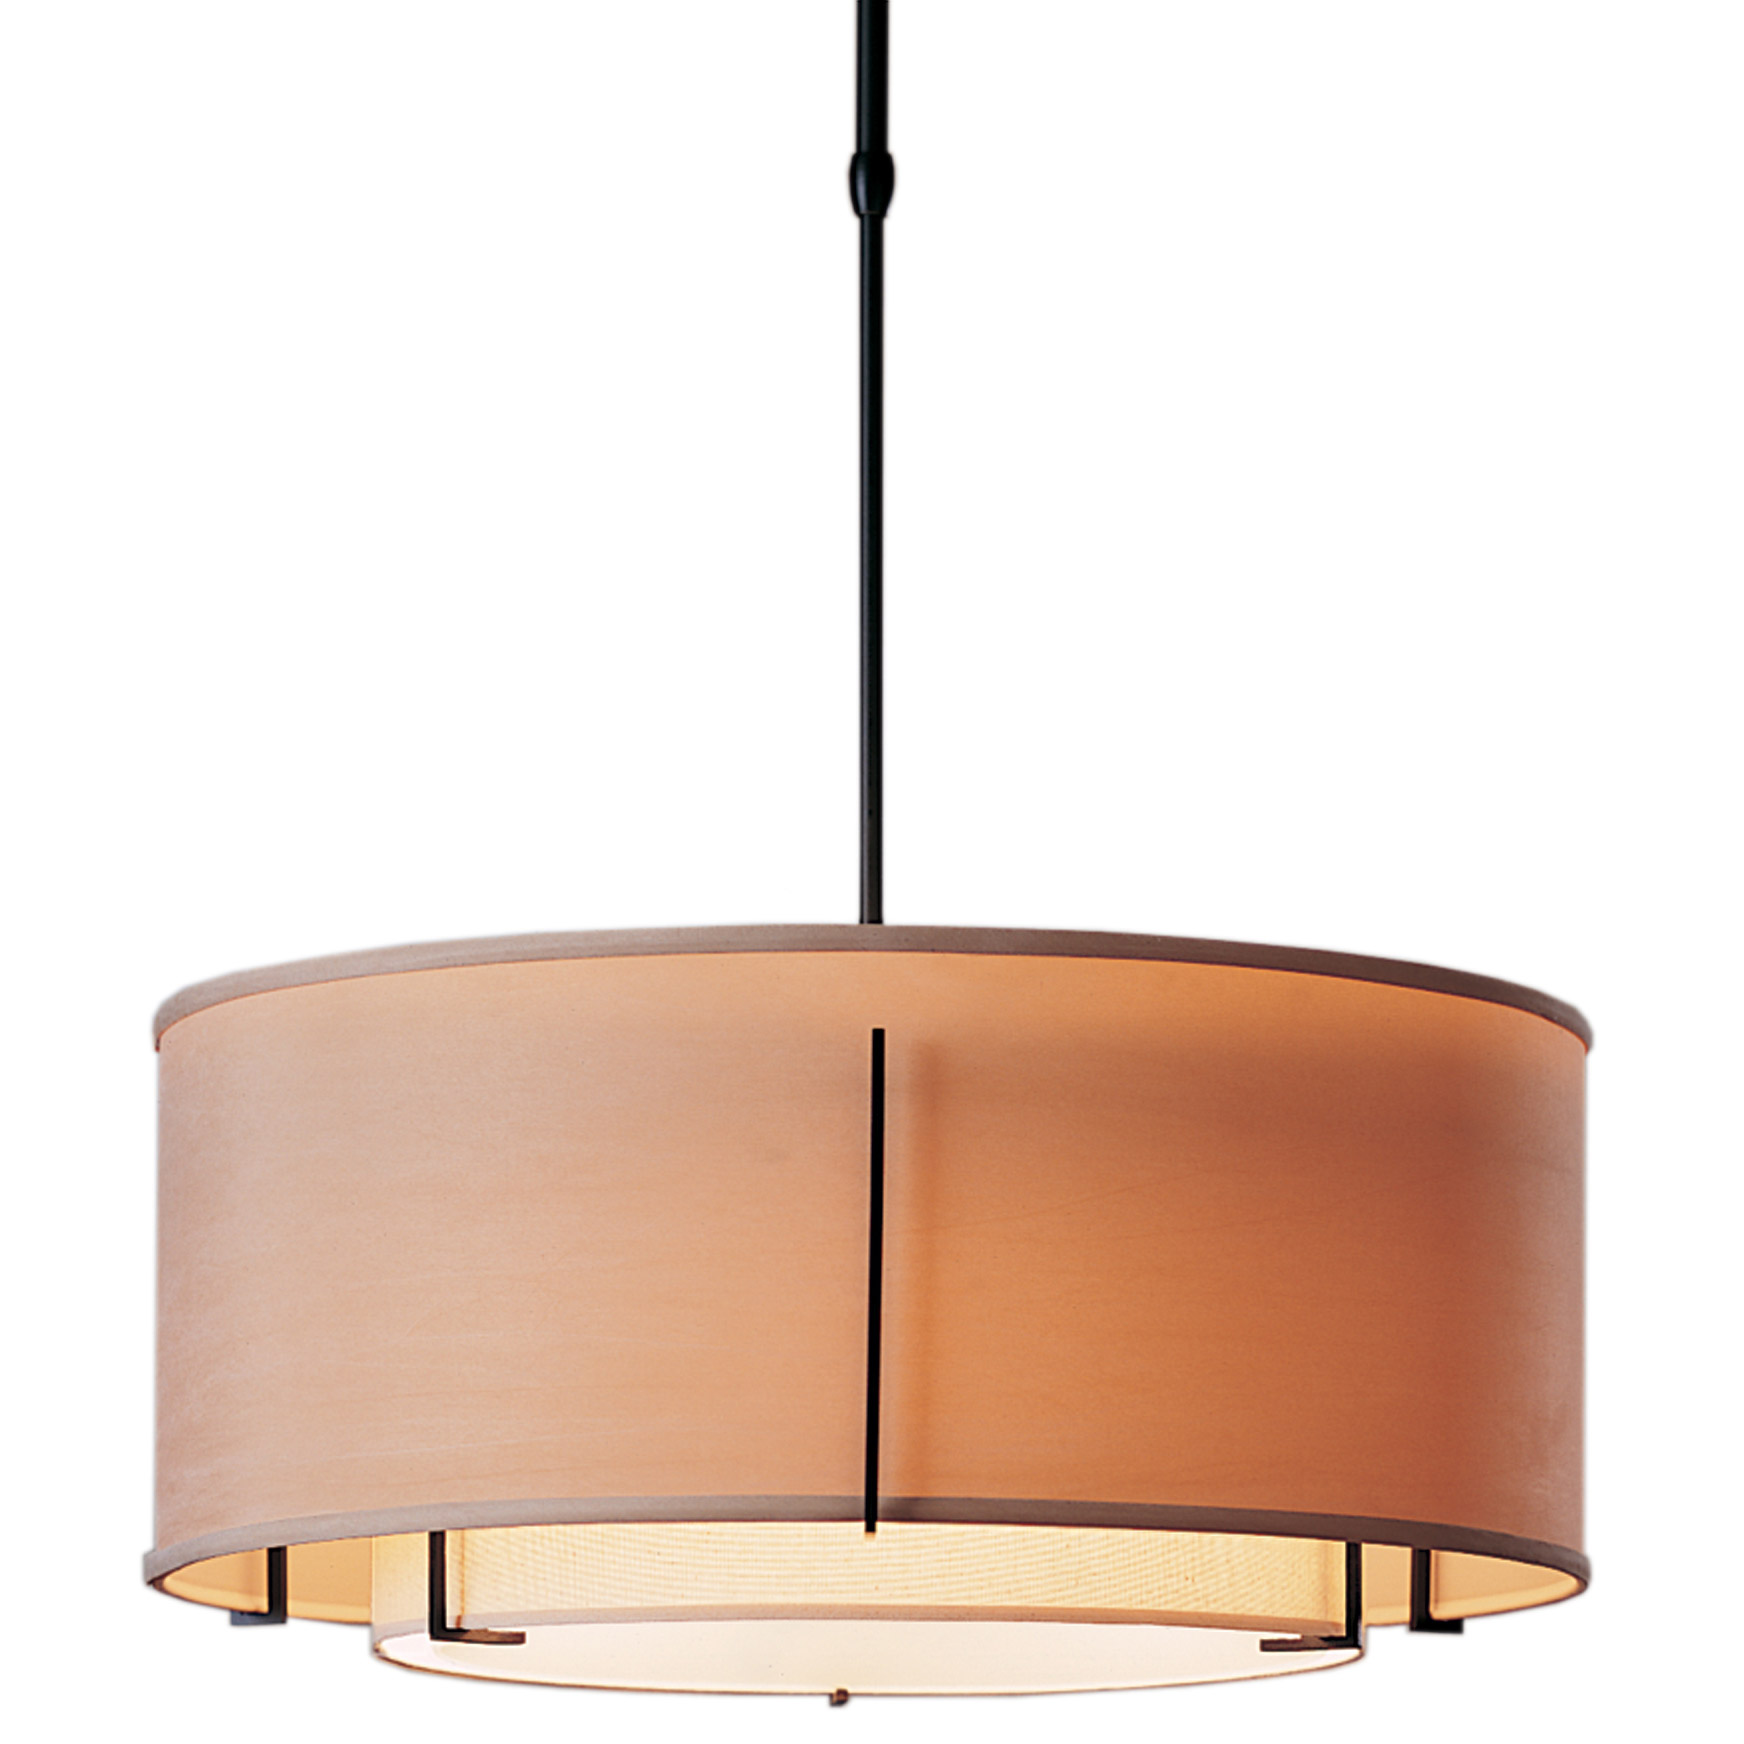 exos round double shade pendant by hubbardton forge 139605 1147